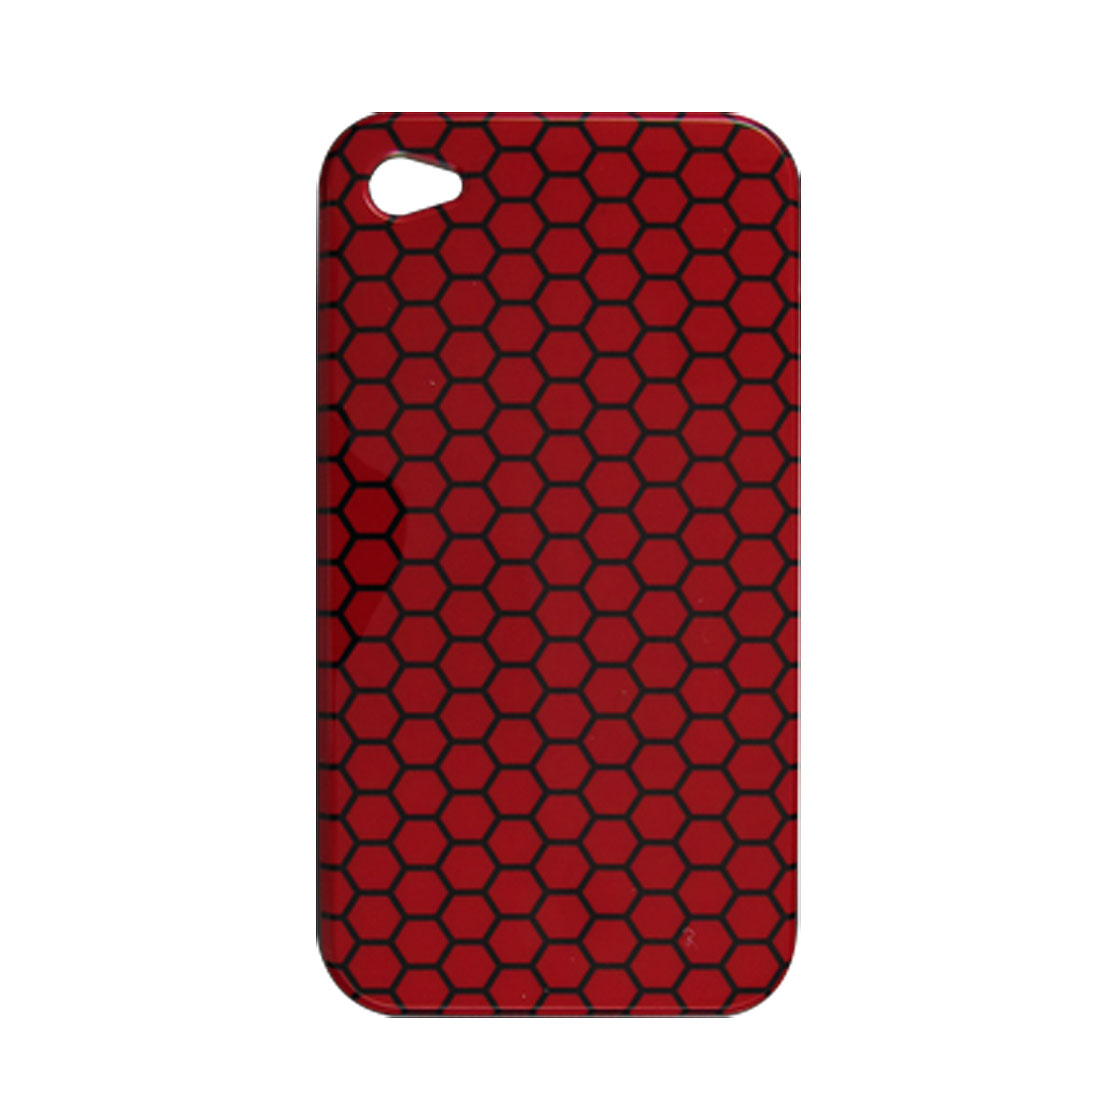 Back Black Hexagon Red Plastic Cover for iPhone 4 4G